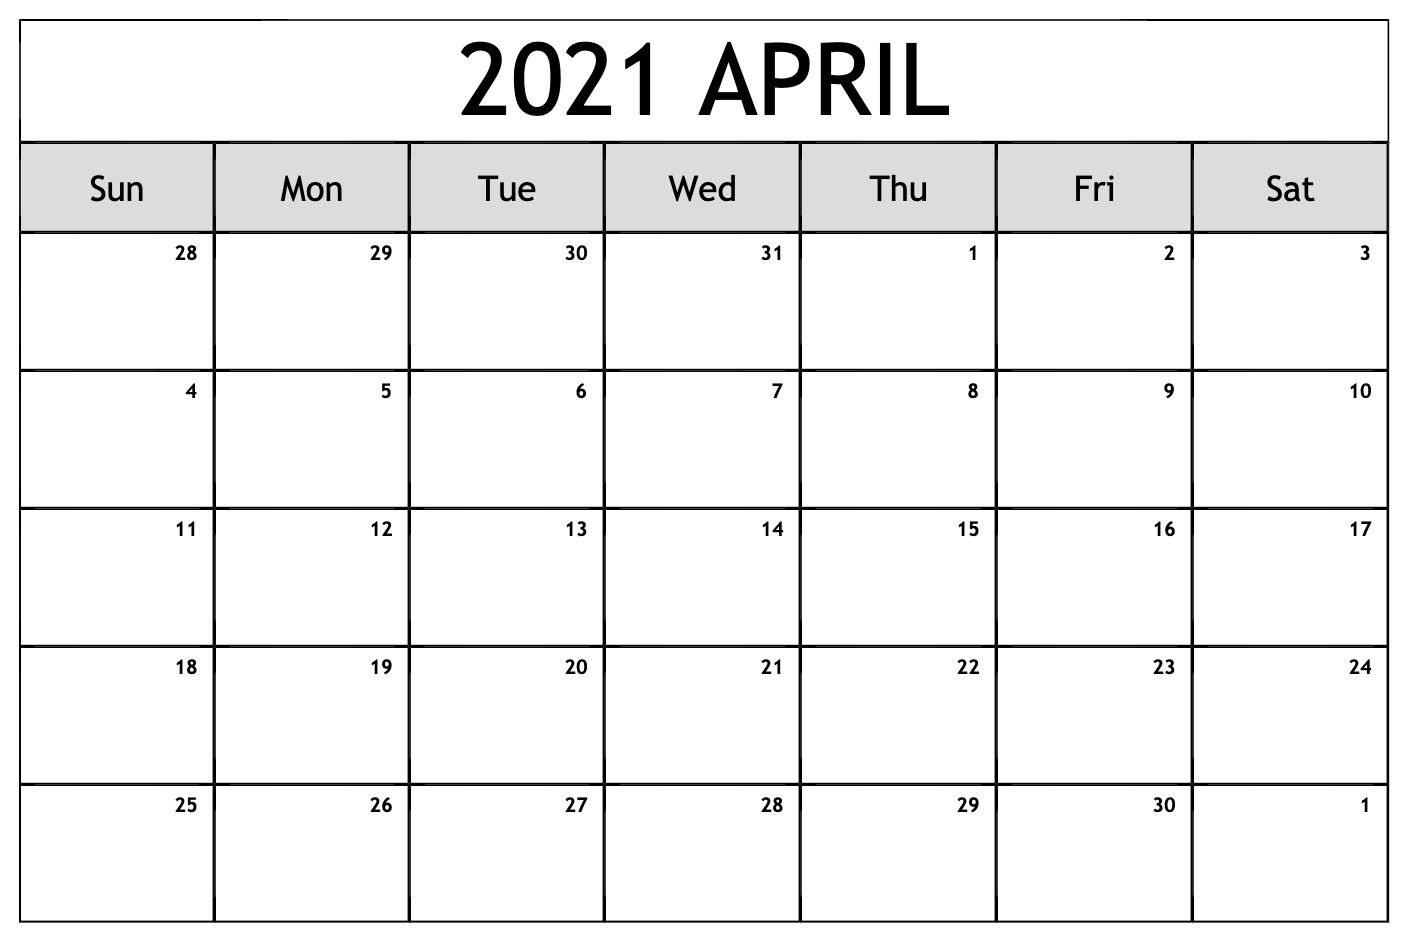 April 2021 Calendar Pdf, Word, Excel Templates In 2020